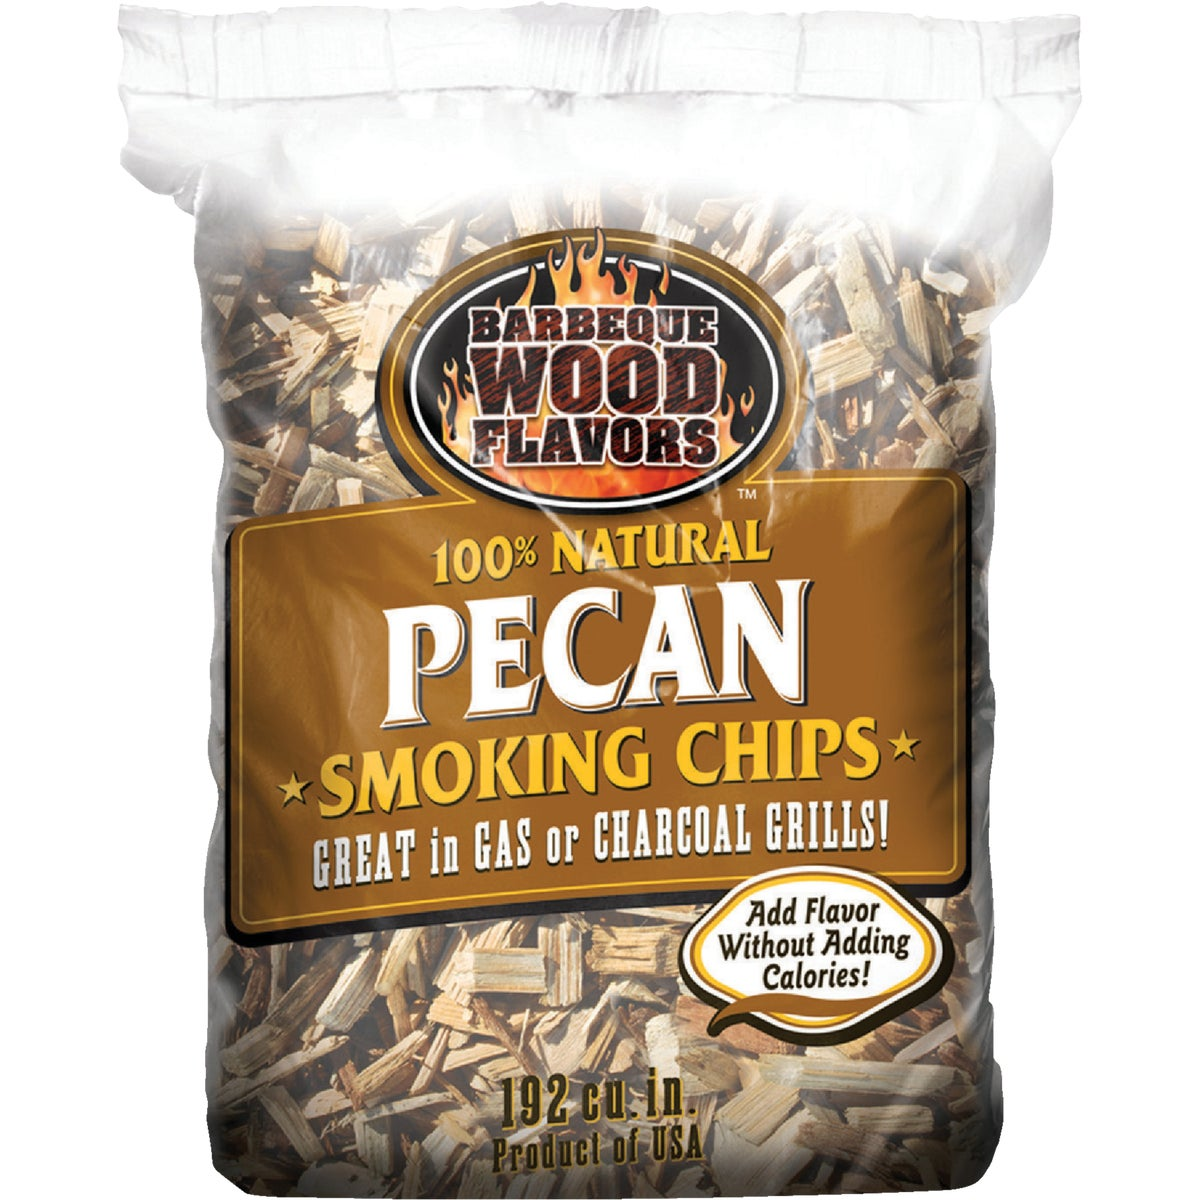 TEXAS SMOKE PECAN CHIPS - 60008 by Barbeque Wood Flavor